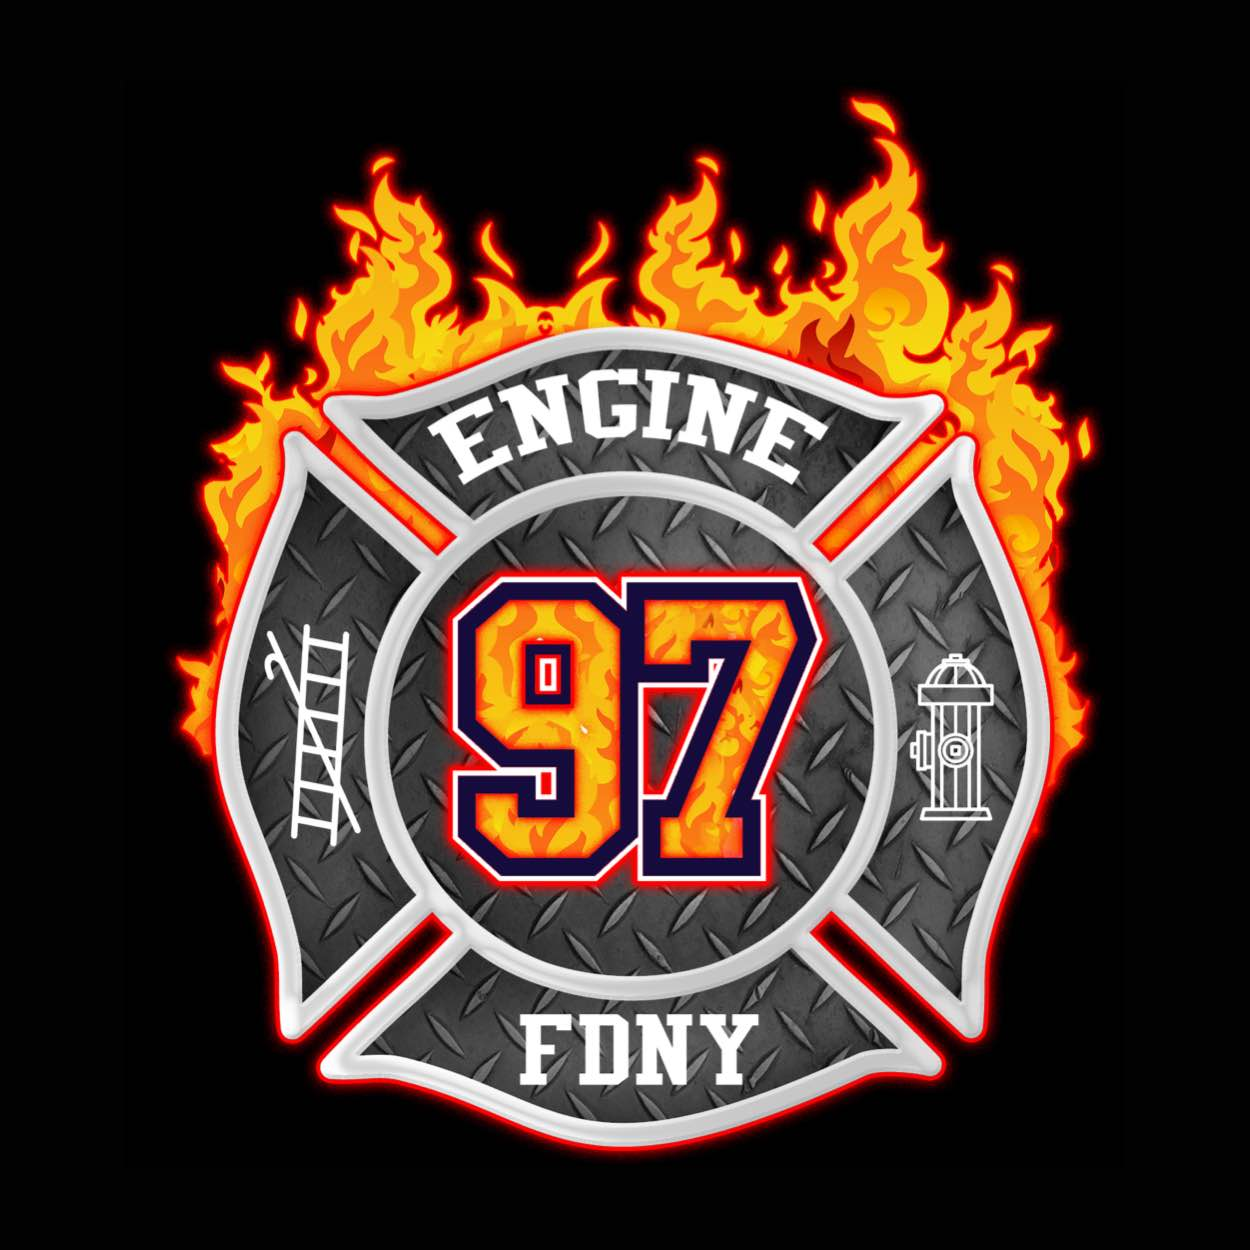 Engine 97 Fire Department Logo